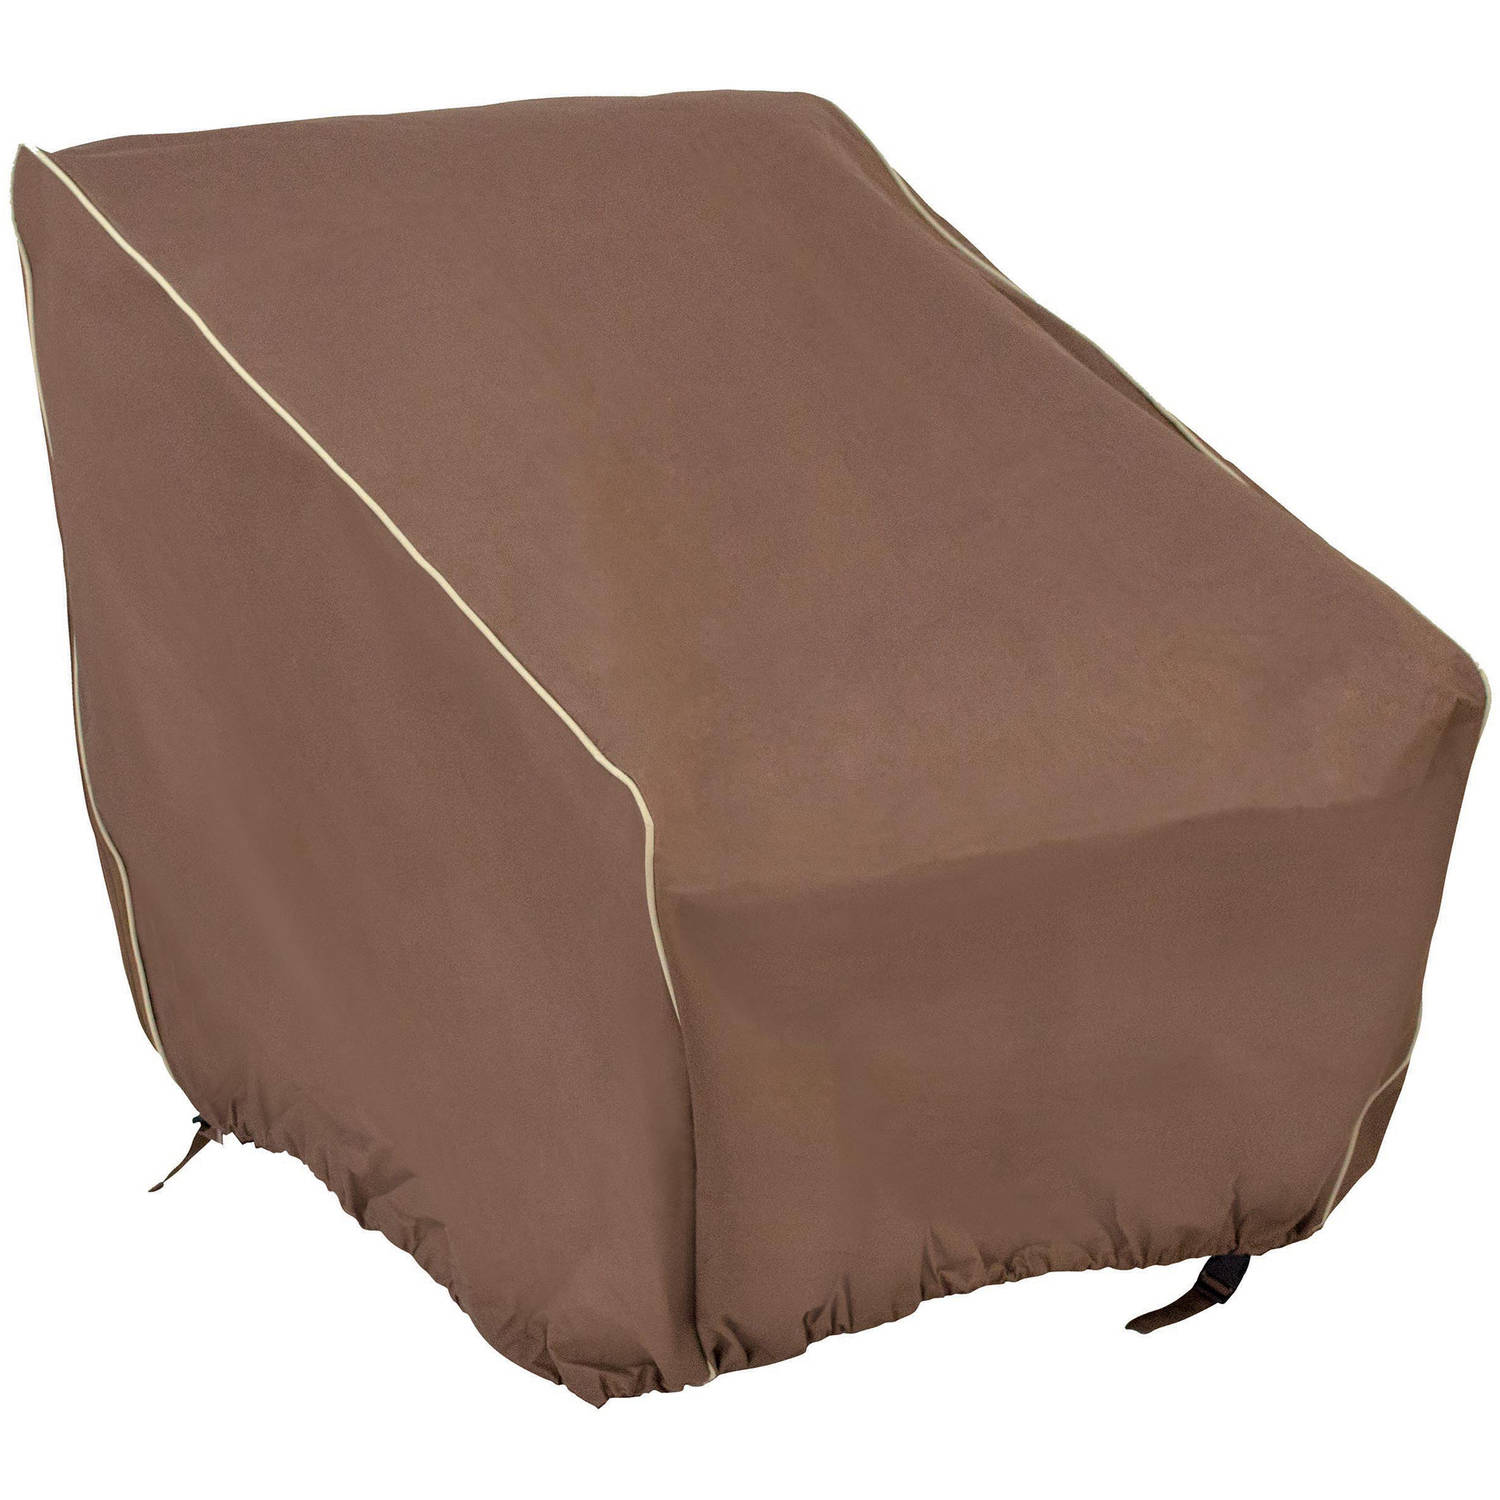 "Armor All Chair Cover, 33"" x 35"" x 36"""